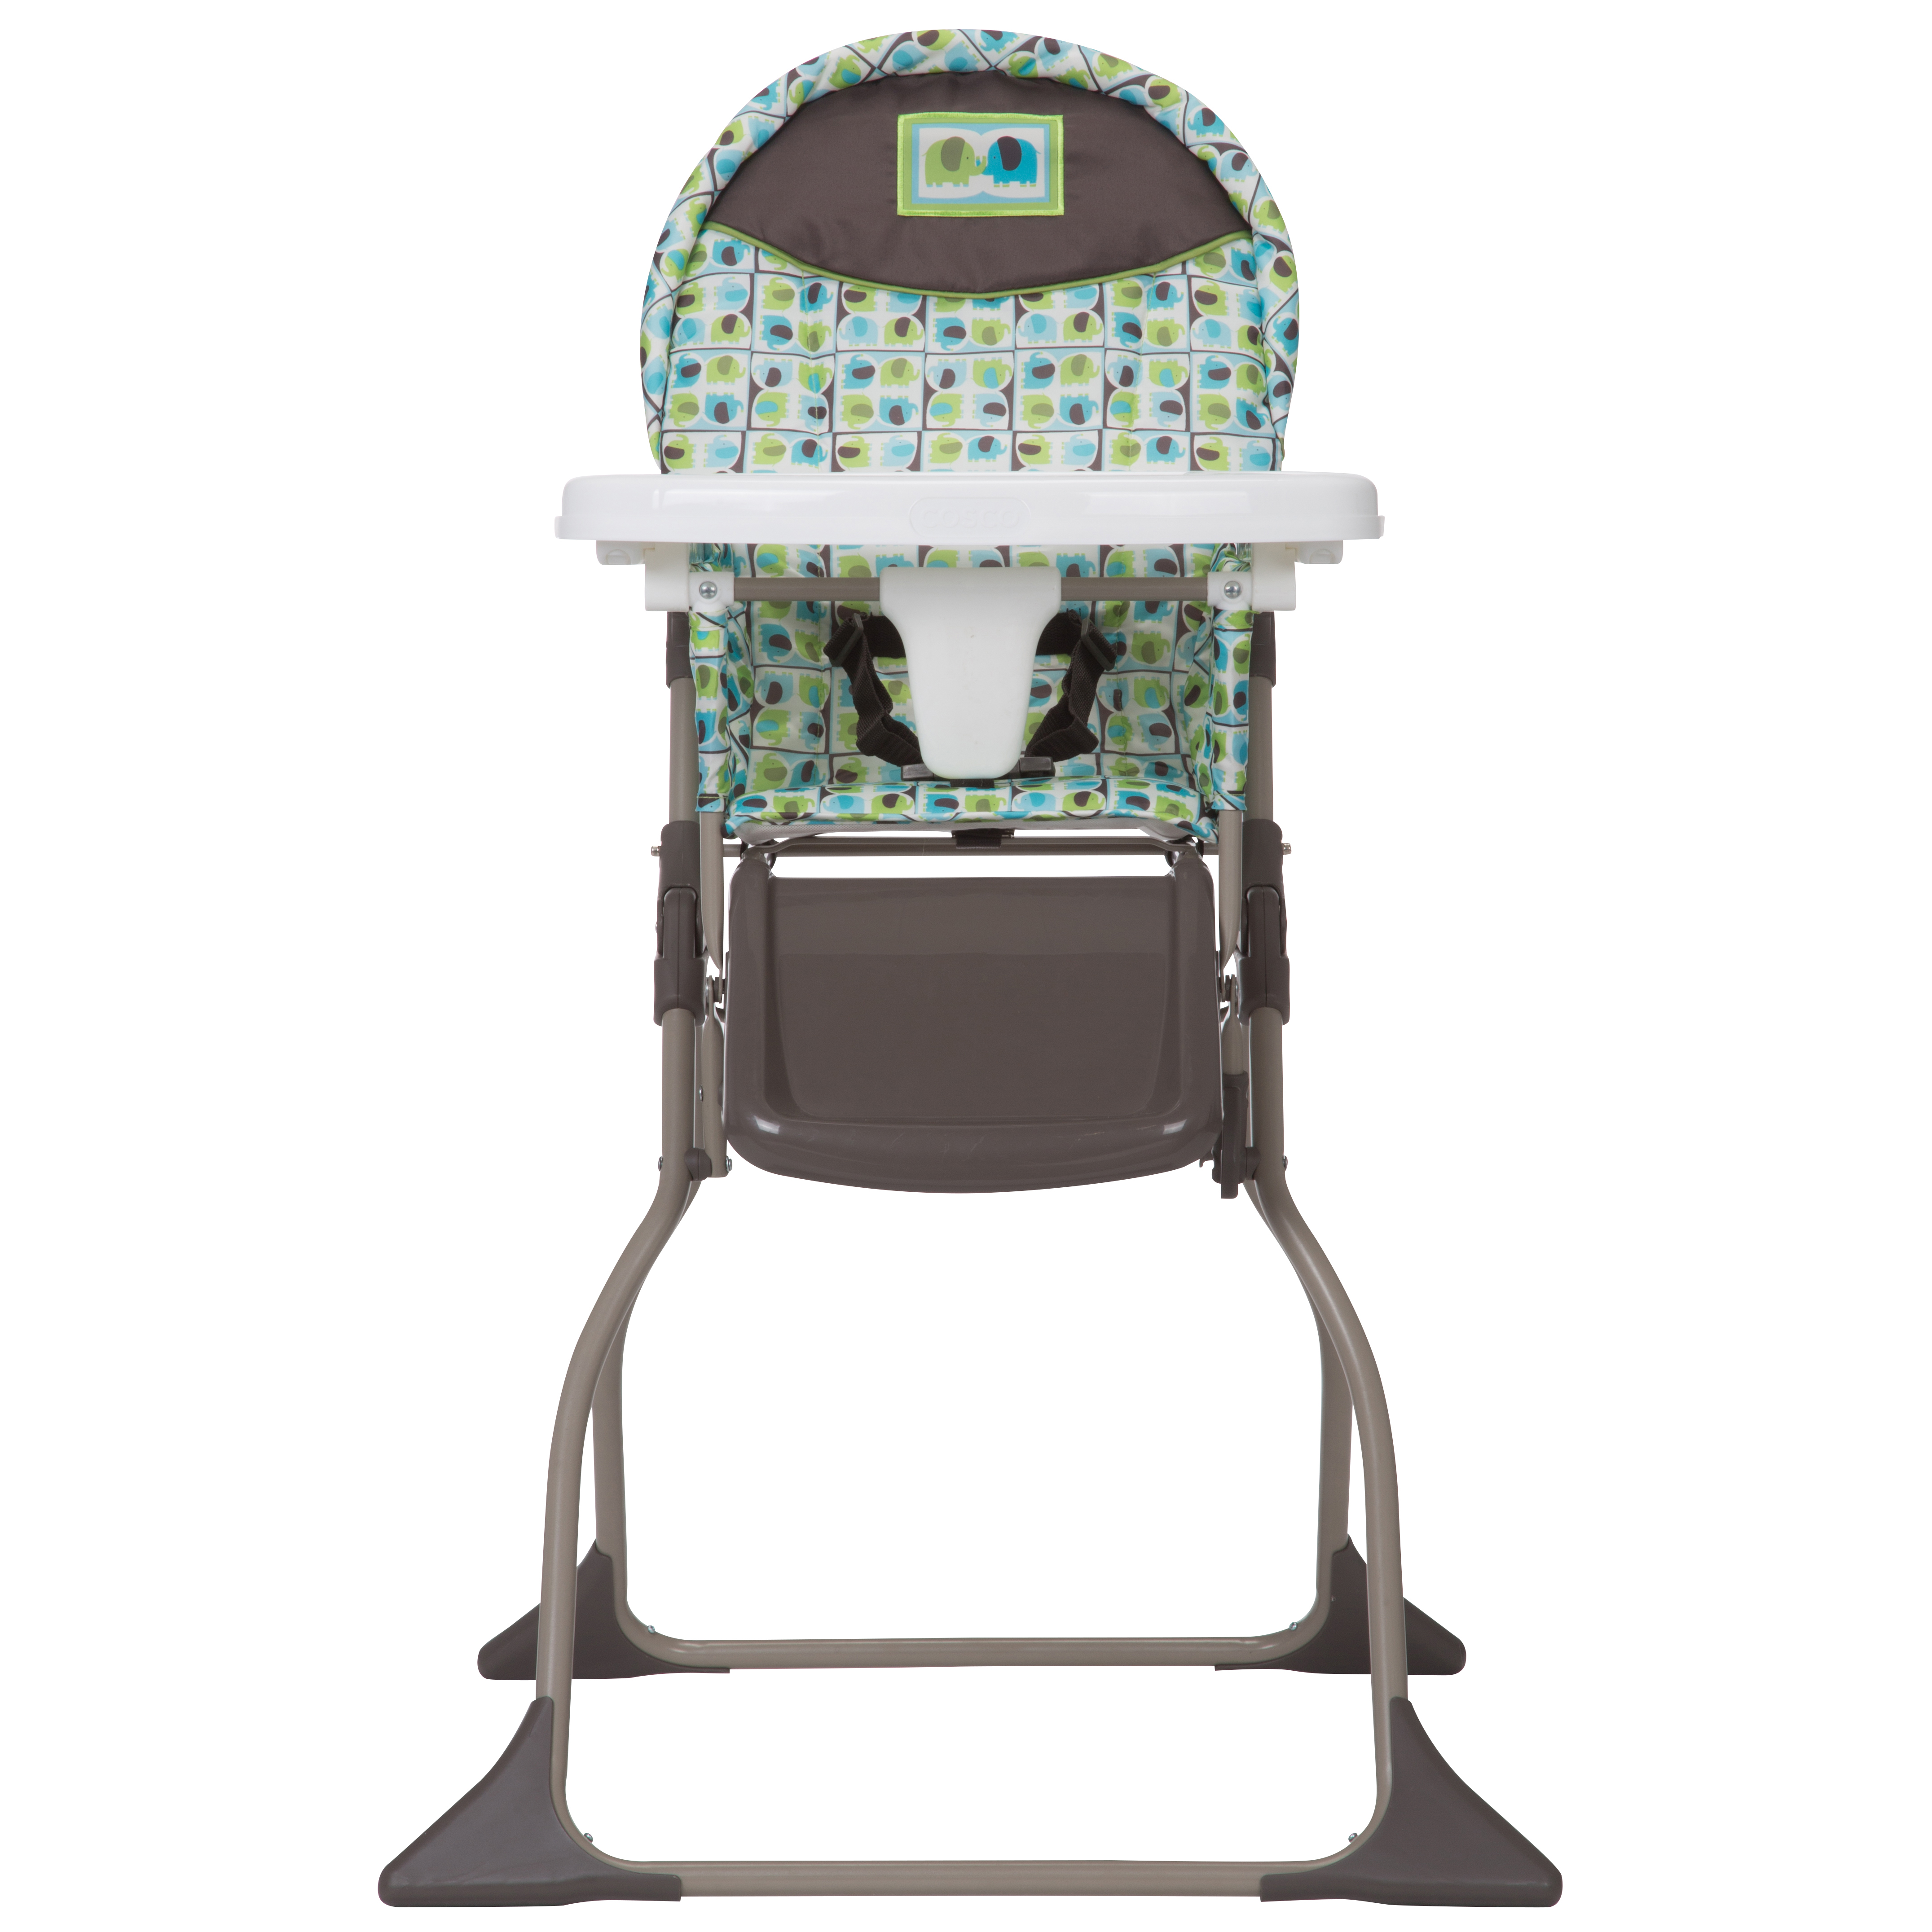 Cosco Simple Fold Full Size High Chair, Etched Arrows by Cosco